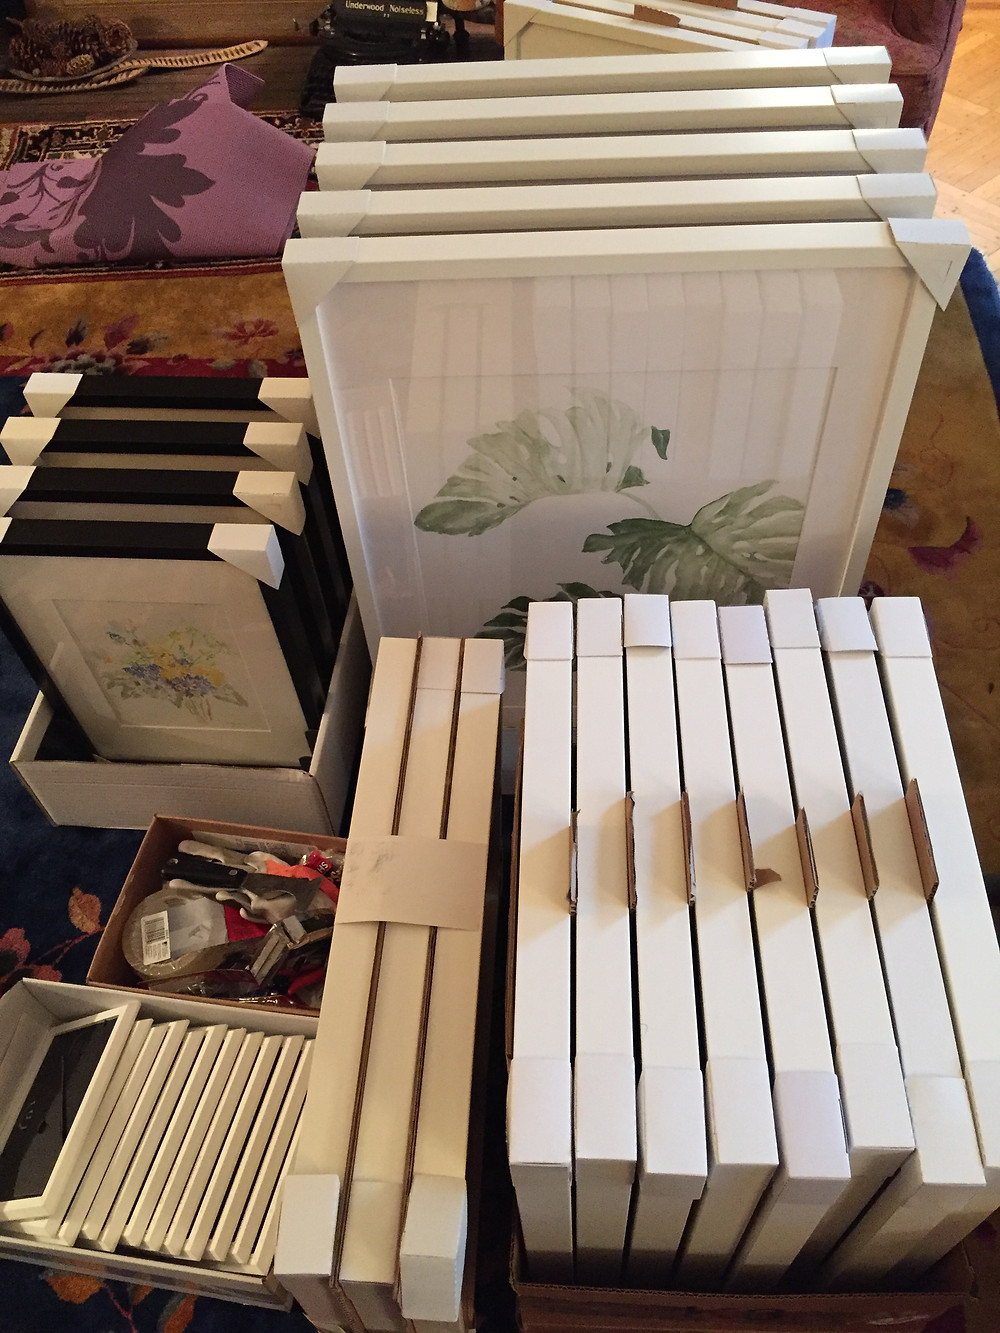 Paintings packed up for transport